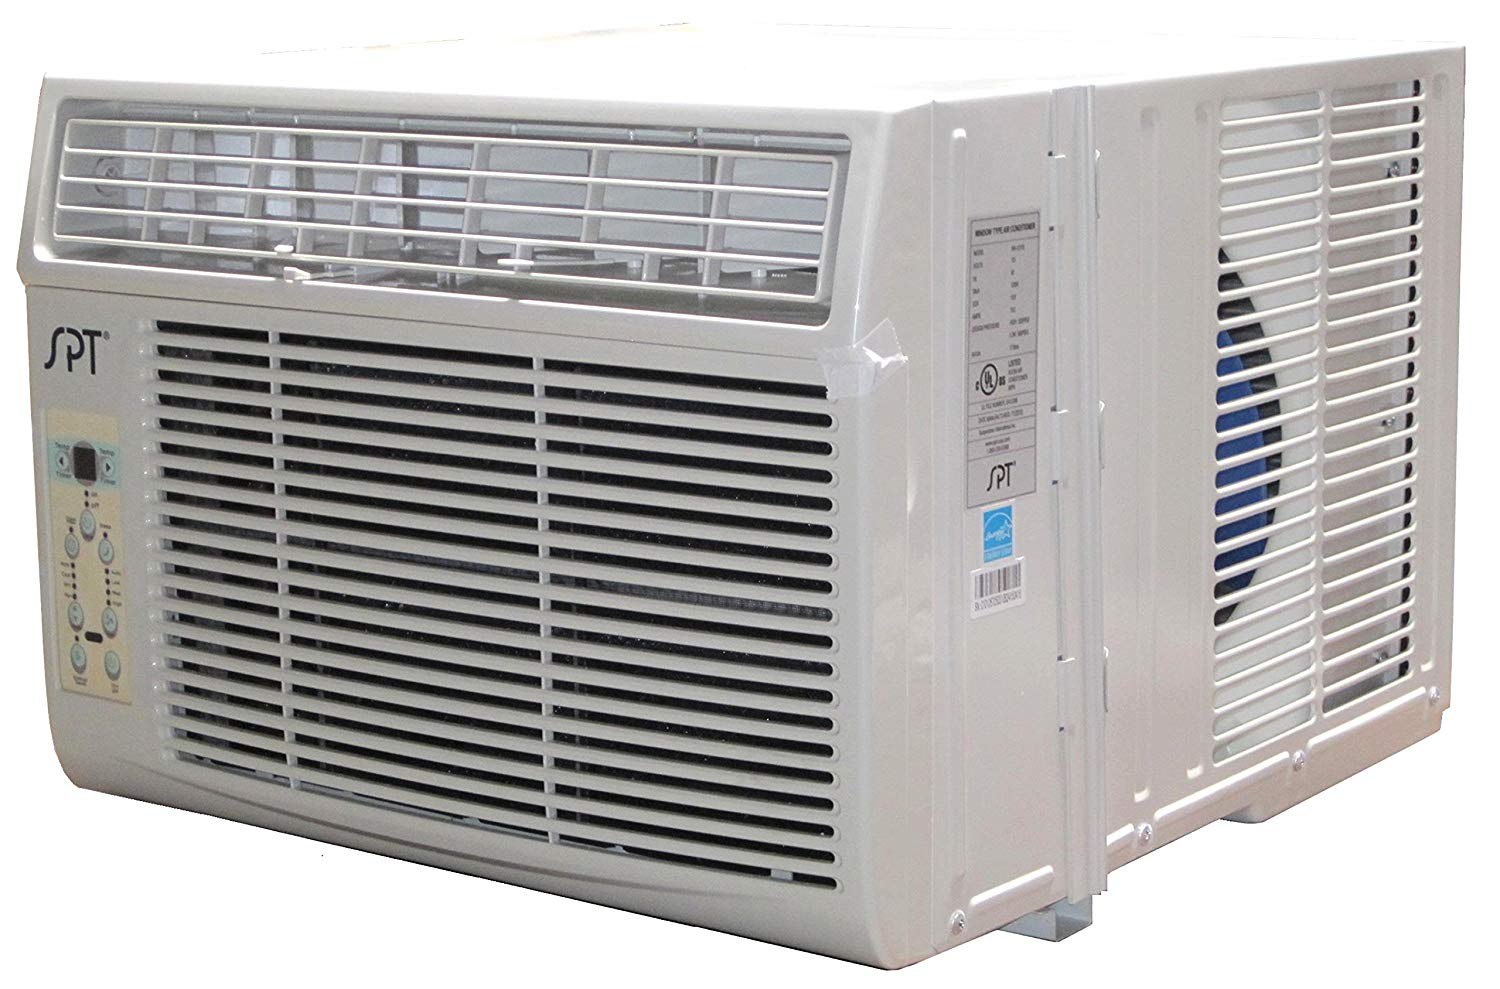 SPT WA-1222S 12,000BTUs Air Conditioner